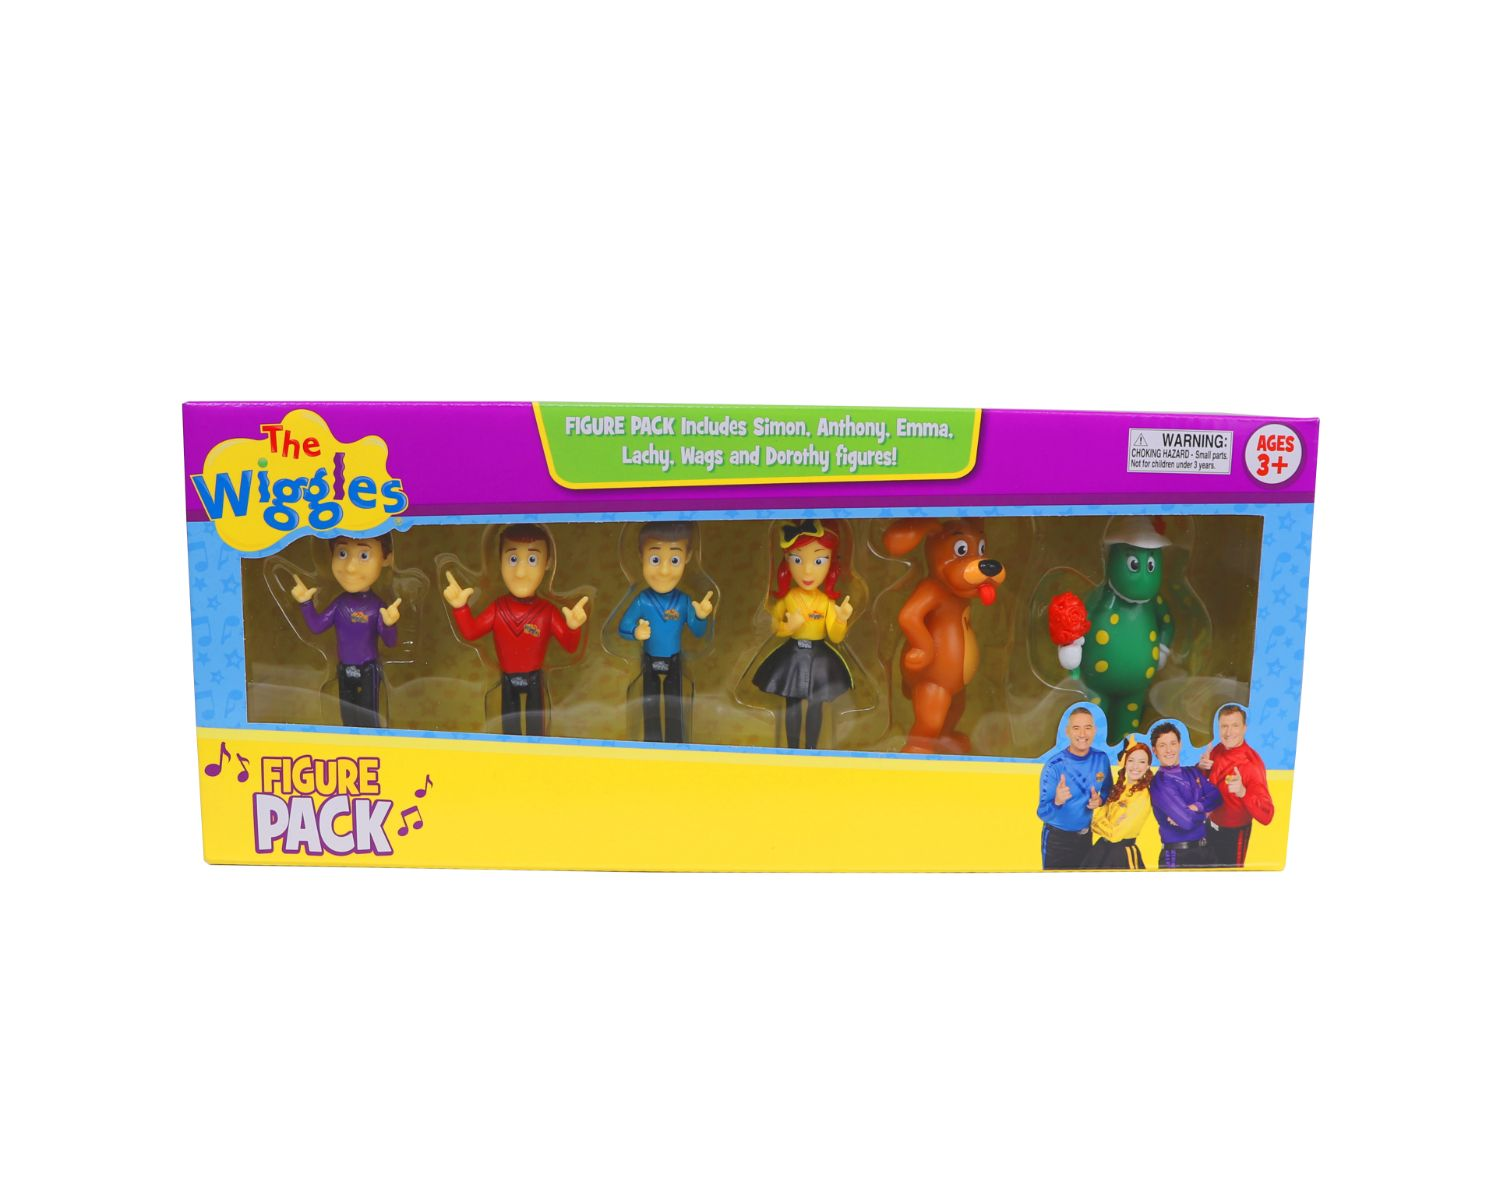 The Wiggles 6 Figure Pack Play Set Cake Topper Decorations